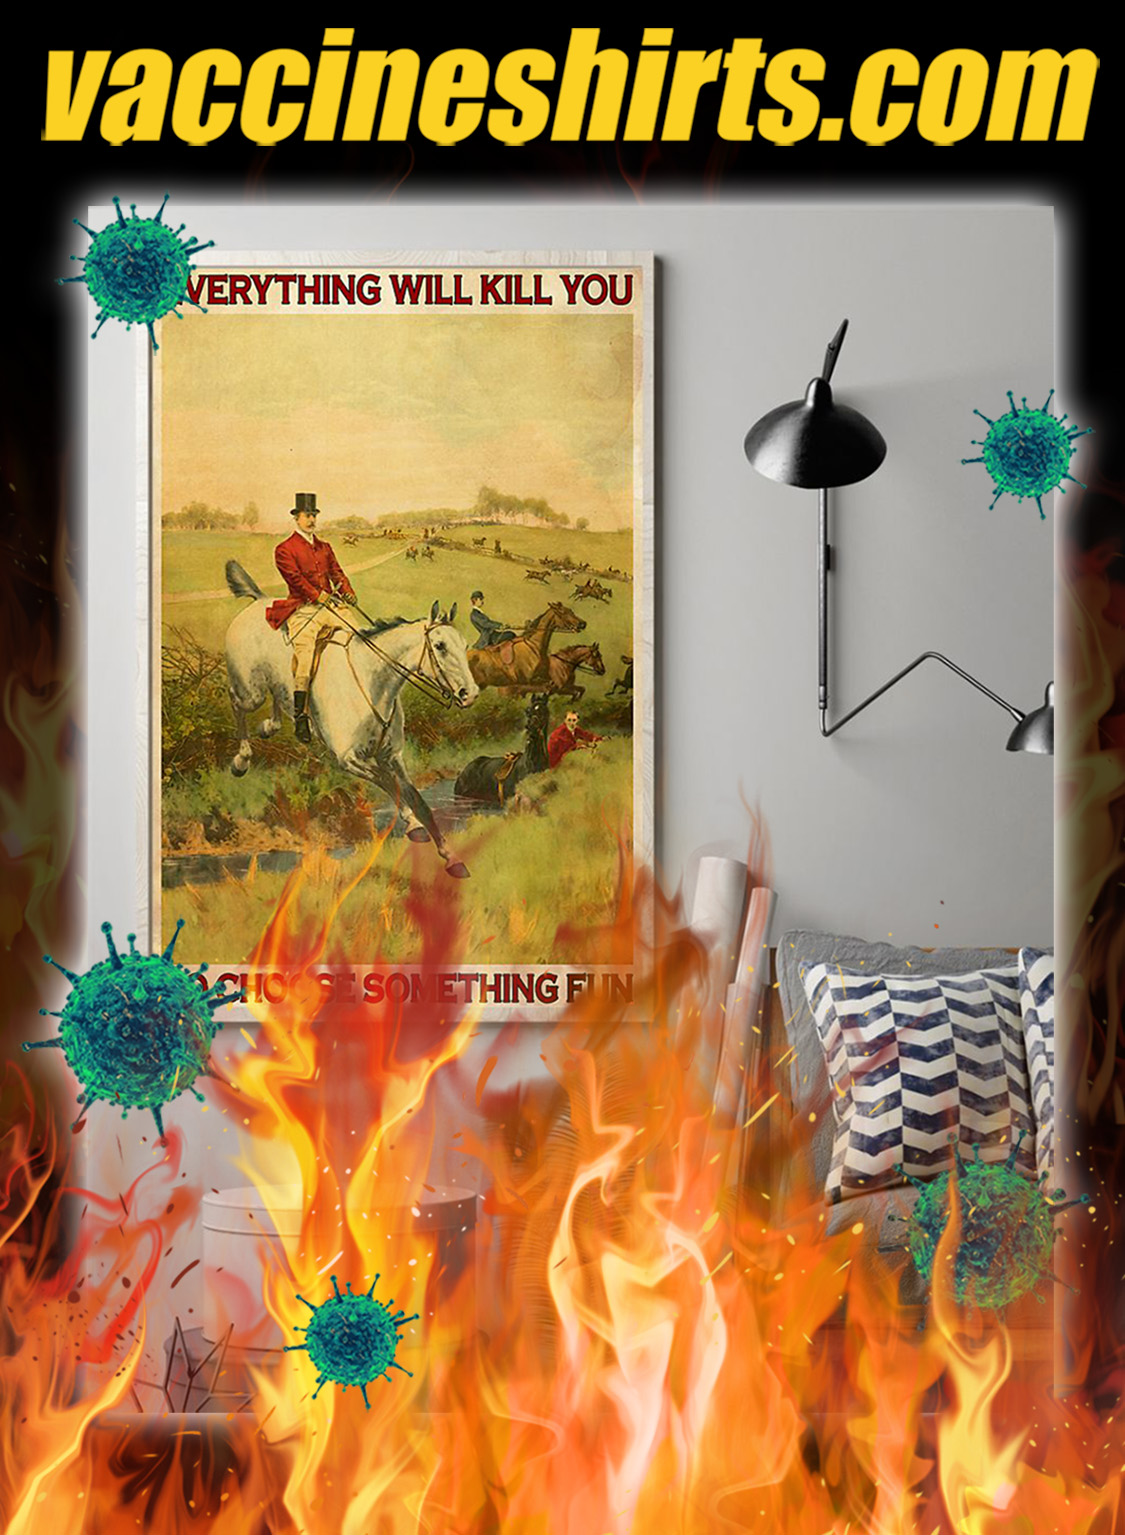 Fox hunting Everything will kill you so choose something fun poster- A1